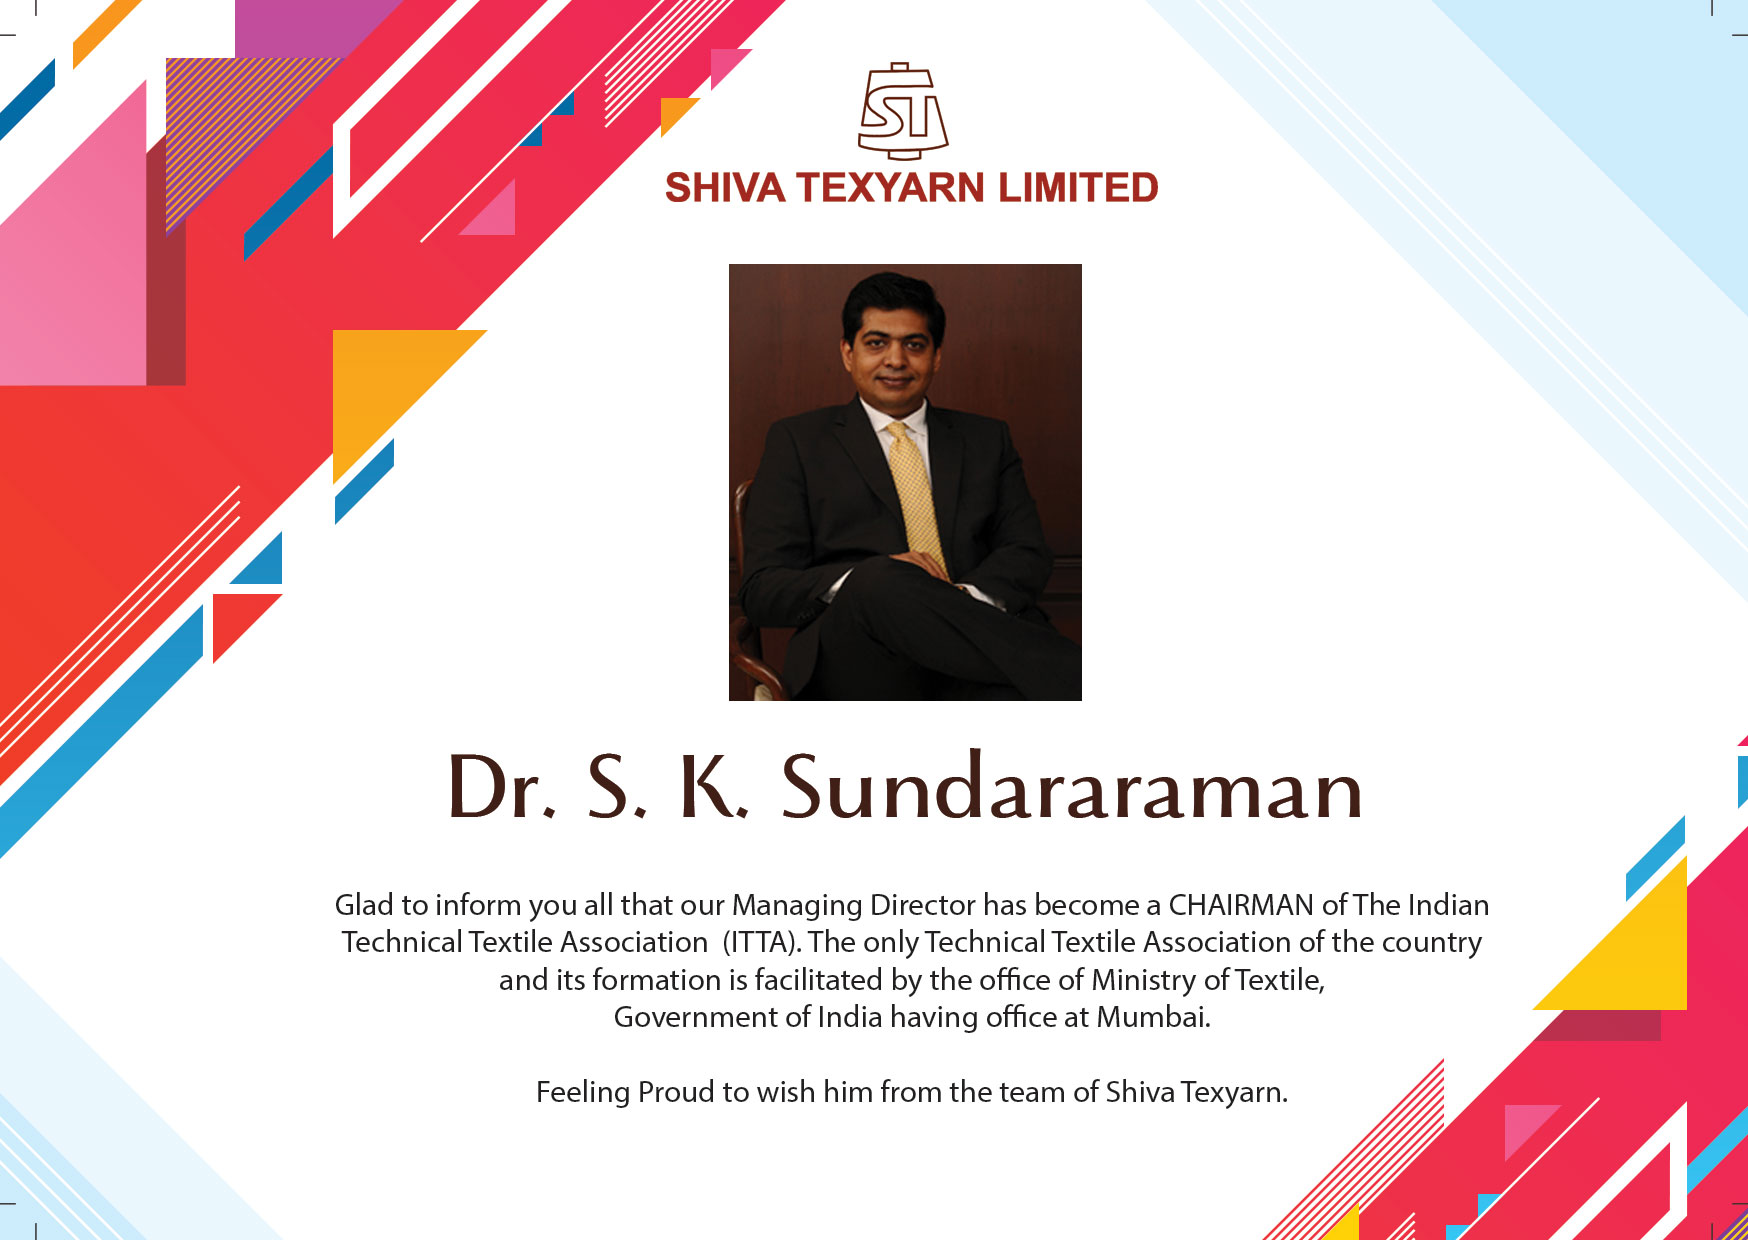 Managing Director has become a CHAIRMAN of The Indian Technical Textile Association  (ITTA)